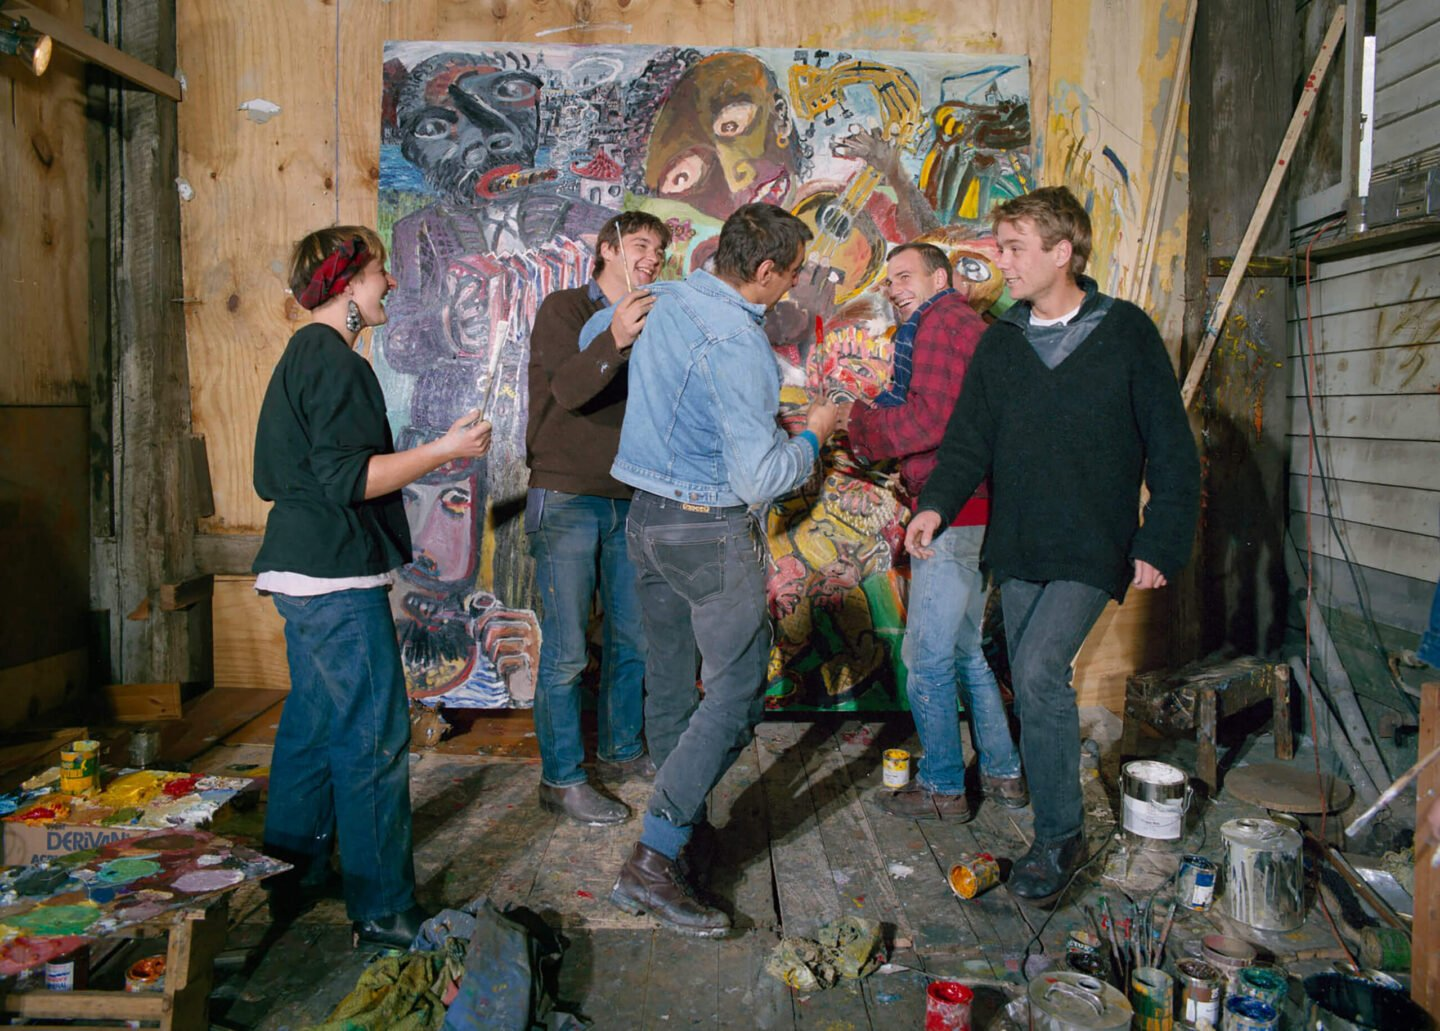 The ROAR artists working on the commissioned murals for the Australian National Gallery in Canberra, 1986. From left to right: Karen Hayman, Mark Howson, Pasquale Giardino, Mike Nikhols, David Larwill, 1986. Photo: John Gollings.